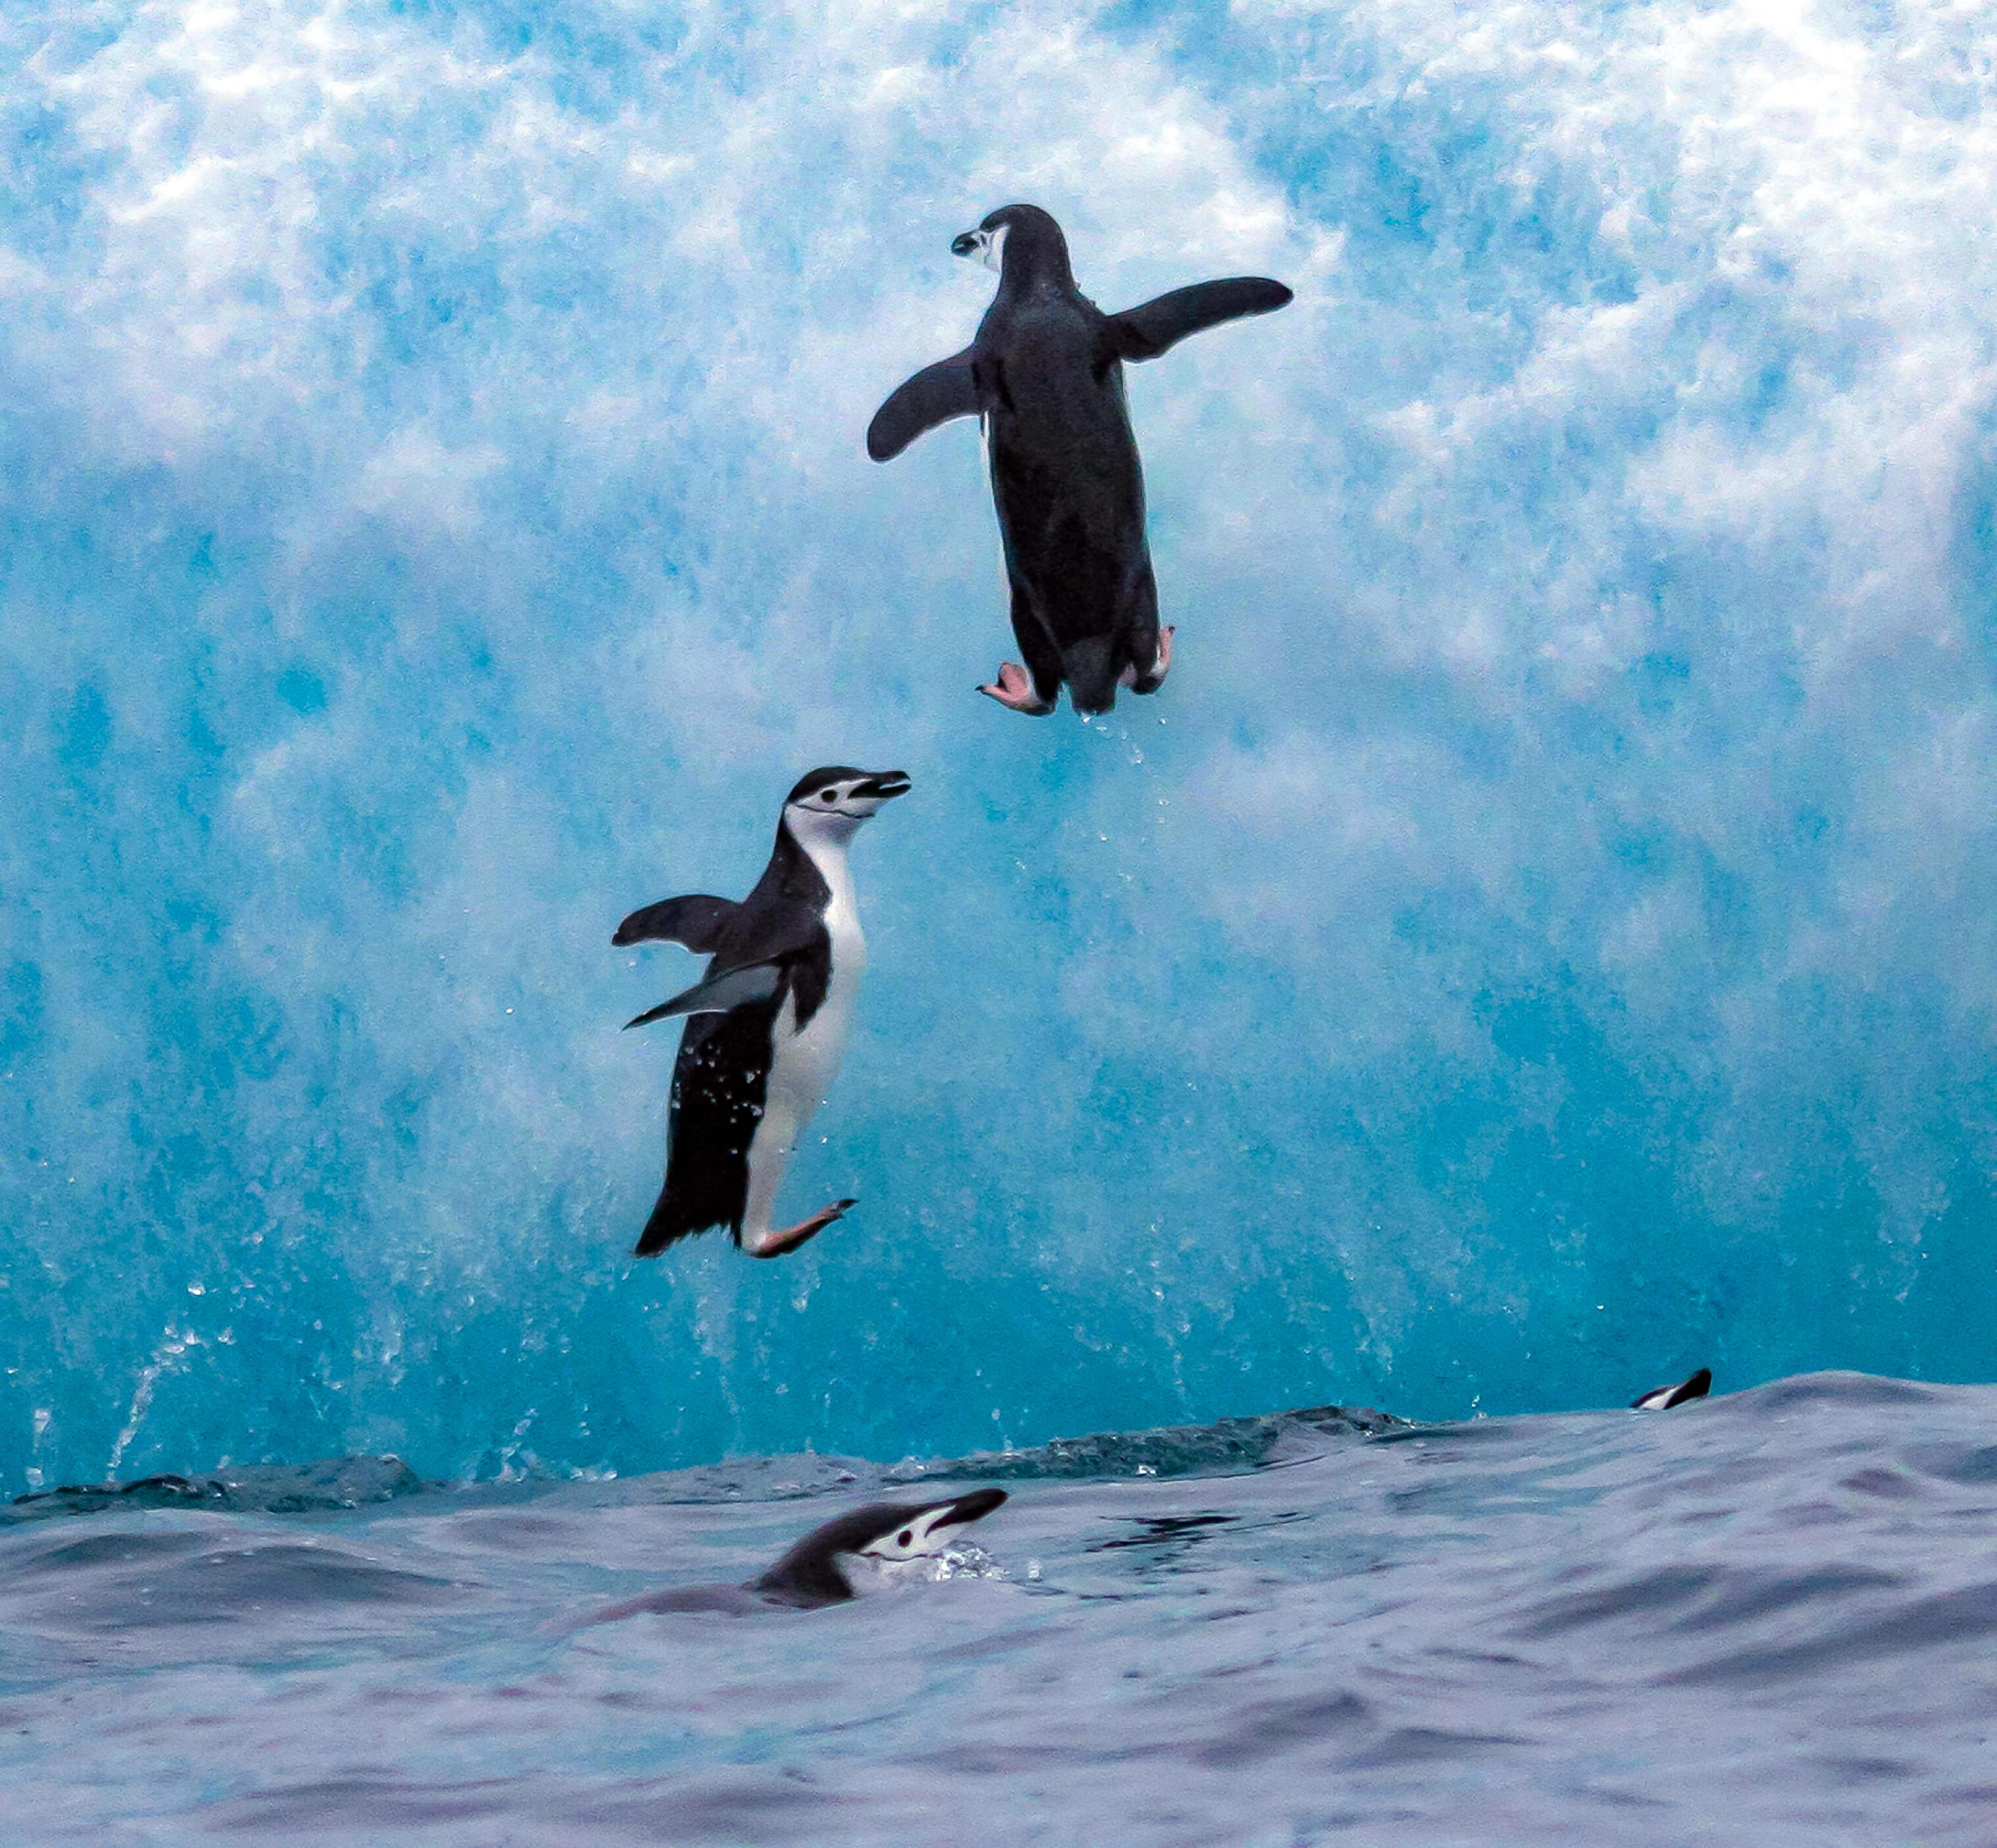 South Sandwich Is, Two Penguins Jumping Up On Iceberg, 2006